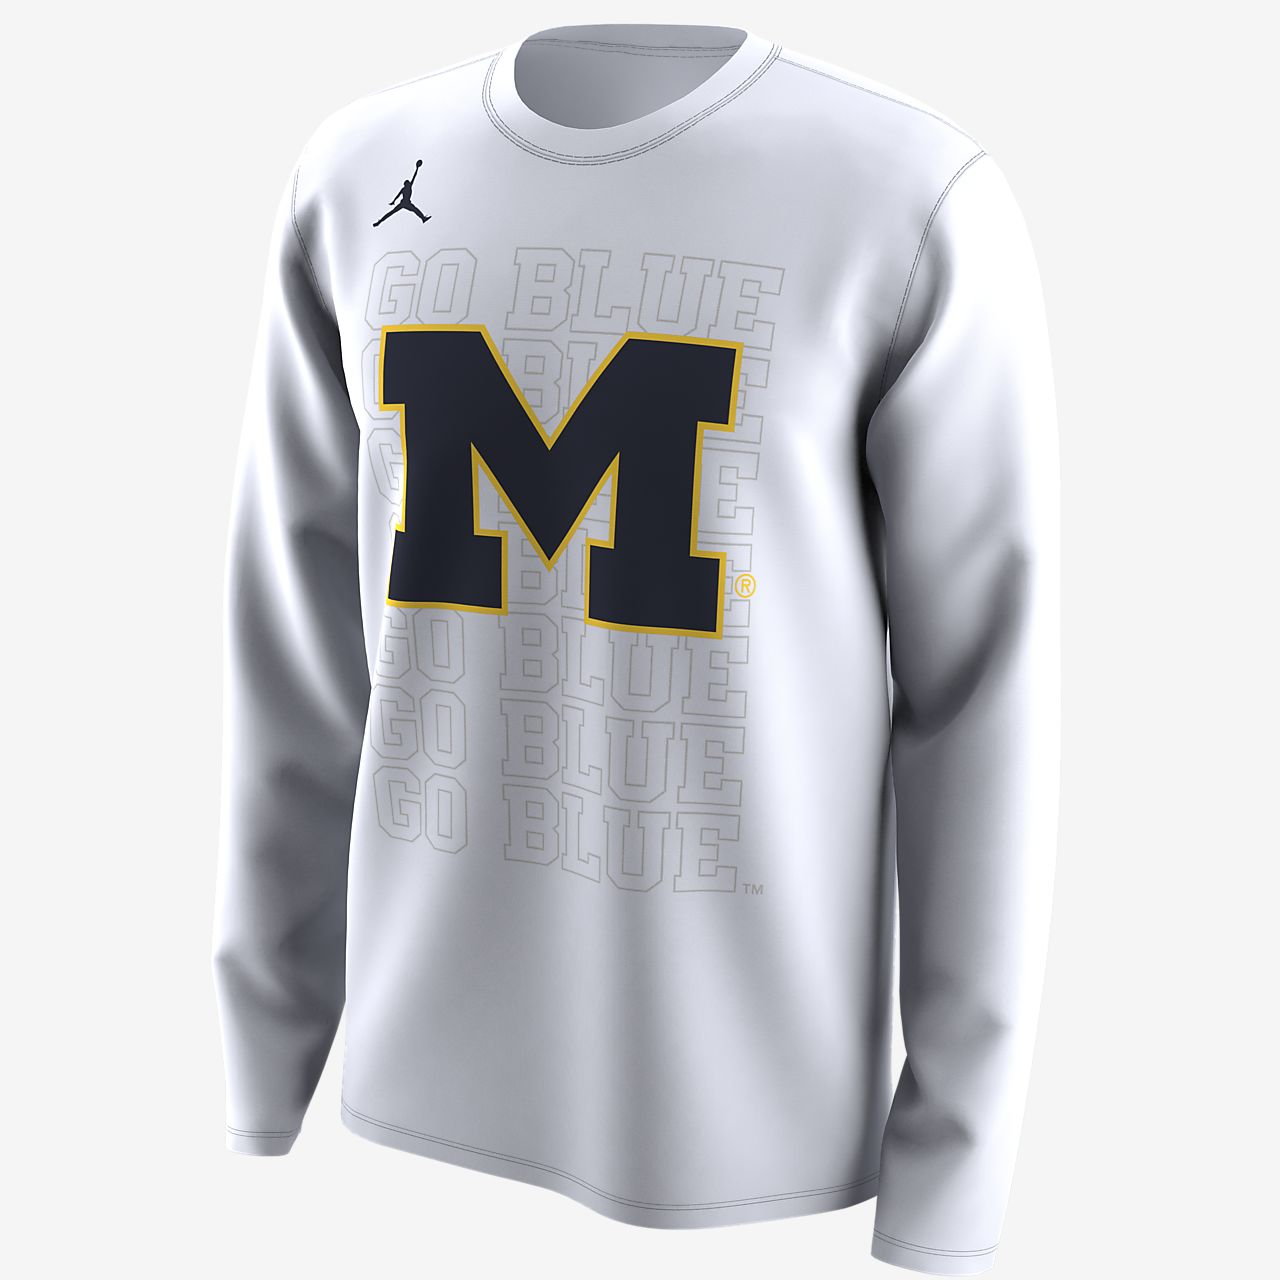 3610272a933dc4 ... Jordan College Dri-FIT Legend